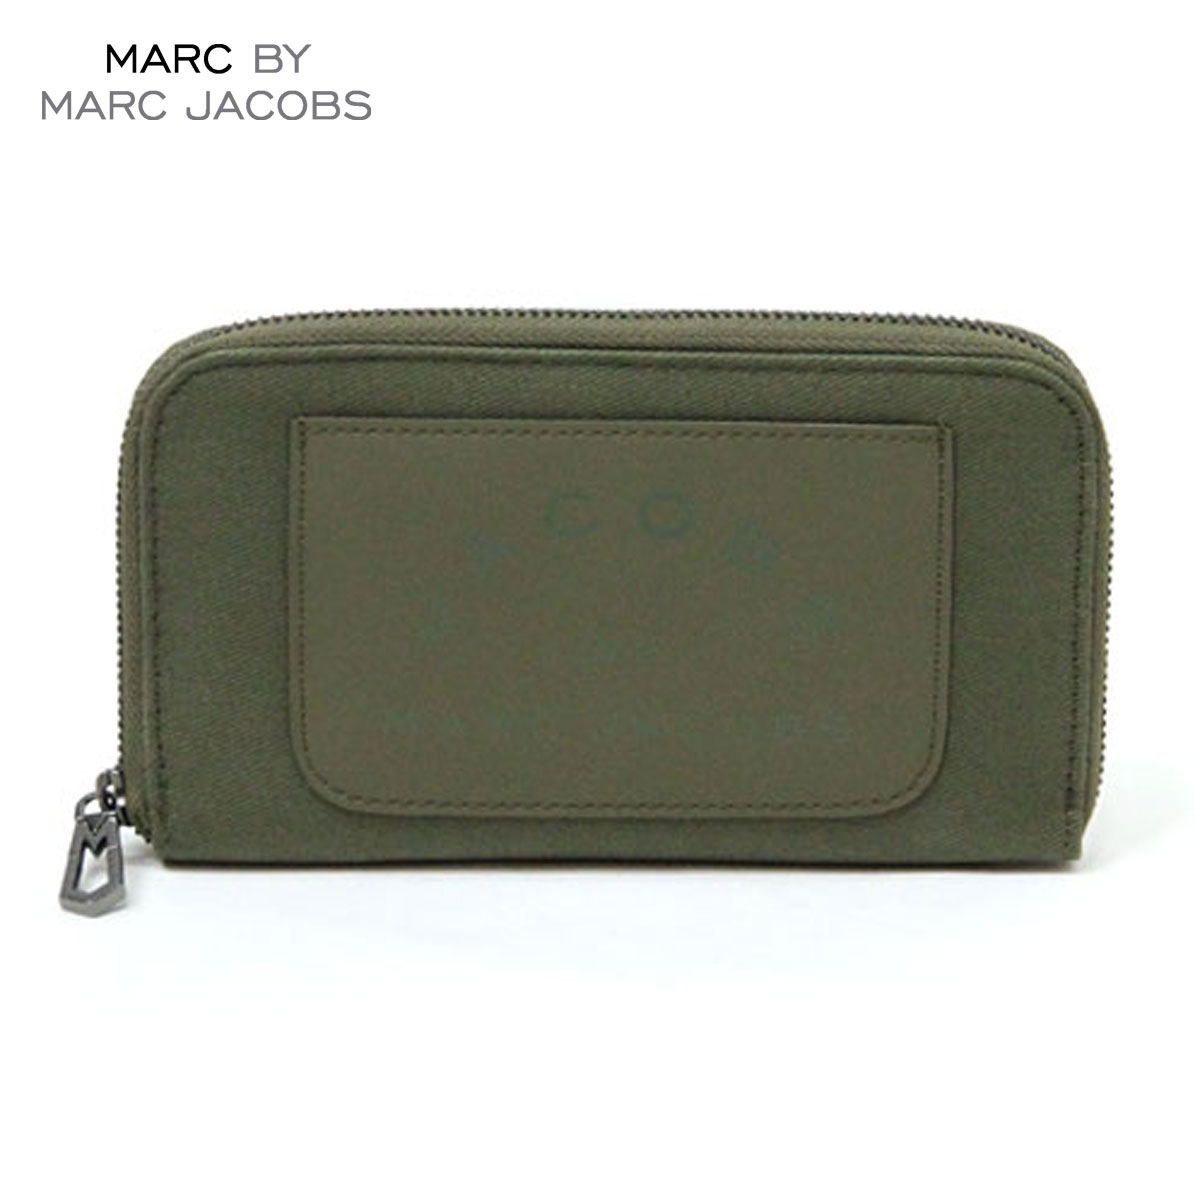 マークジェイコブス MARCJACOBS 正規品 財布 Laminated Twill Jacobs Long Zip Wallet (W19*H11cm) D20S30